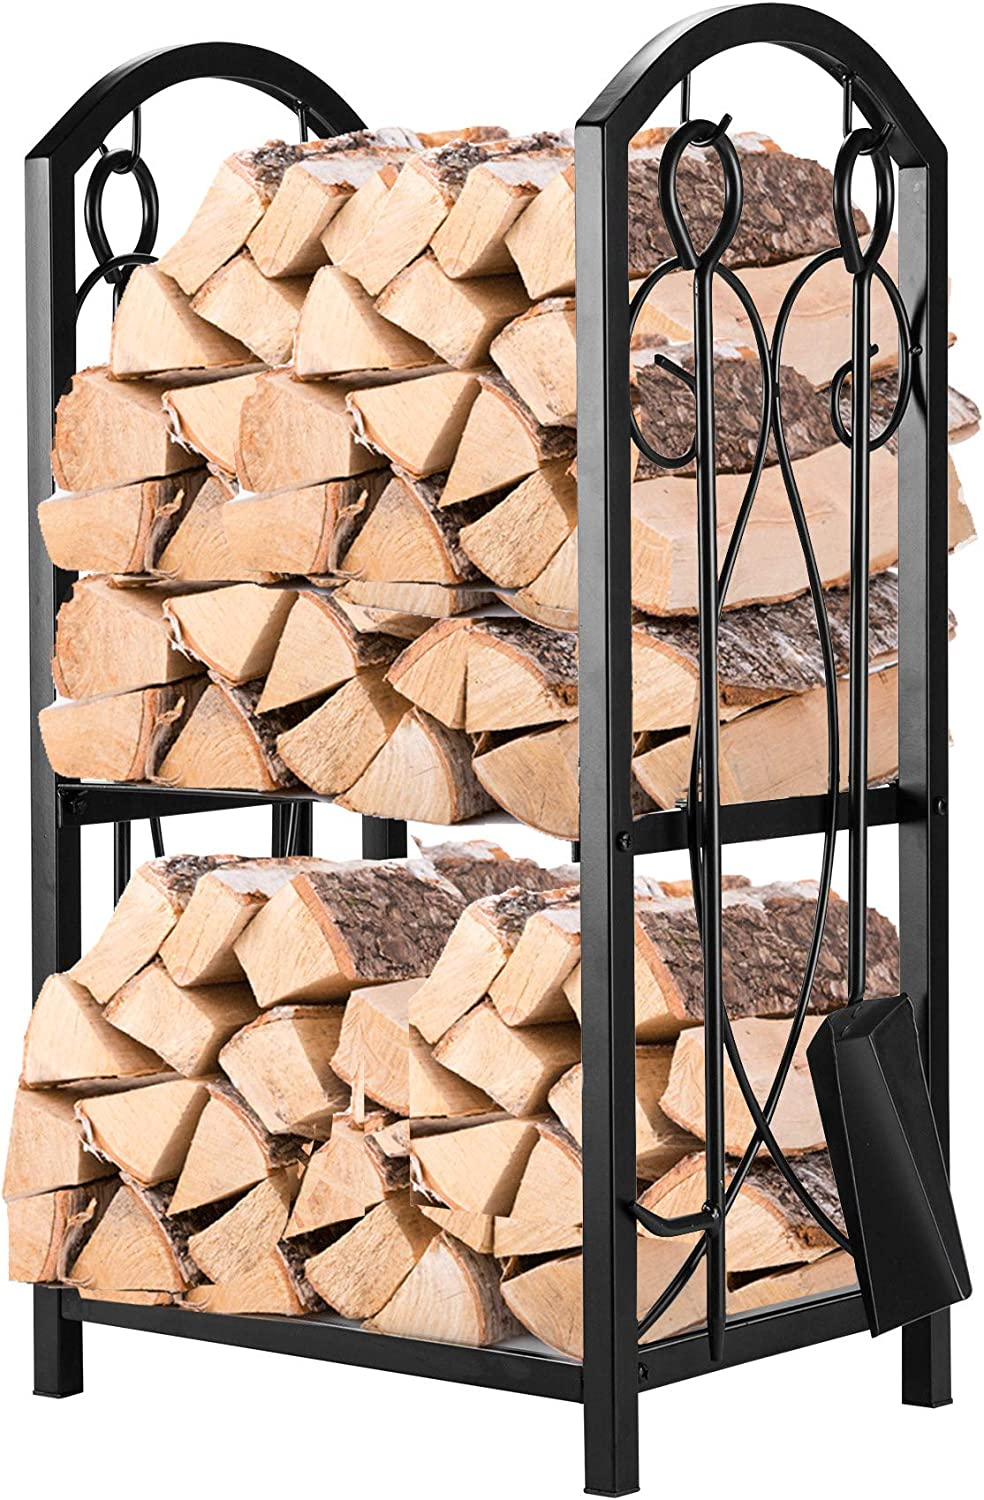 Pinty Firewood Log Rack with 4 Tools Firewood Storage Fireplace Tool Set Indoor Outdoor Wrought Iron Firewood Holders Lumber Storage Stacking Black